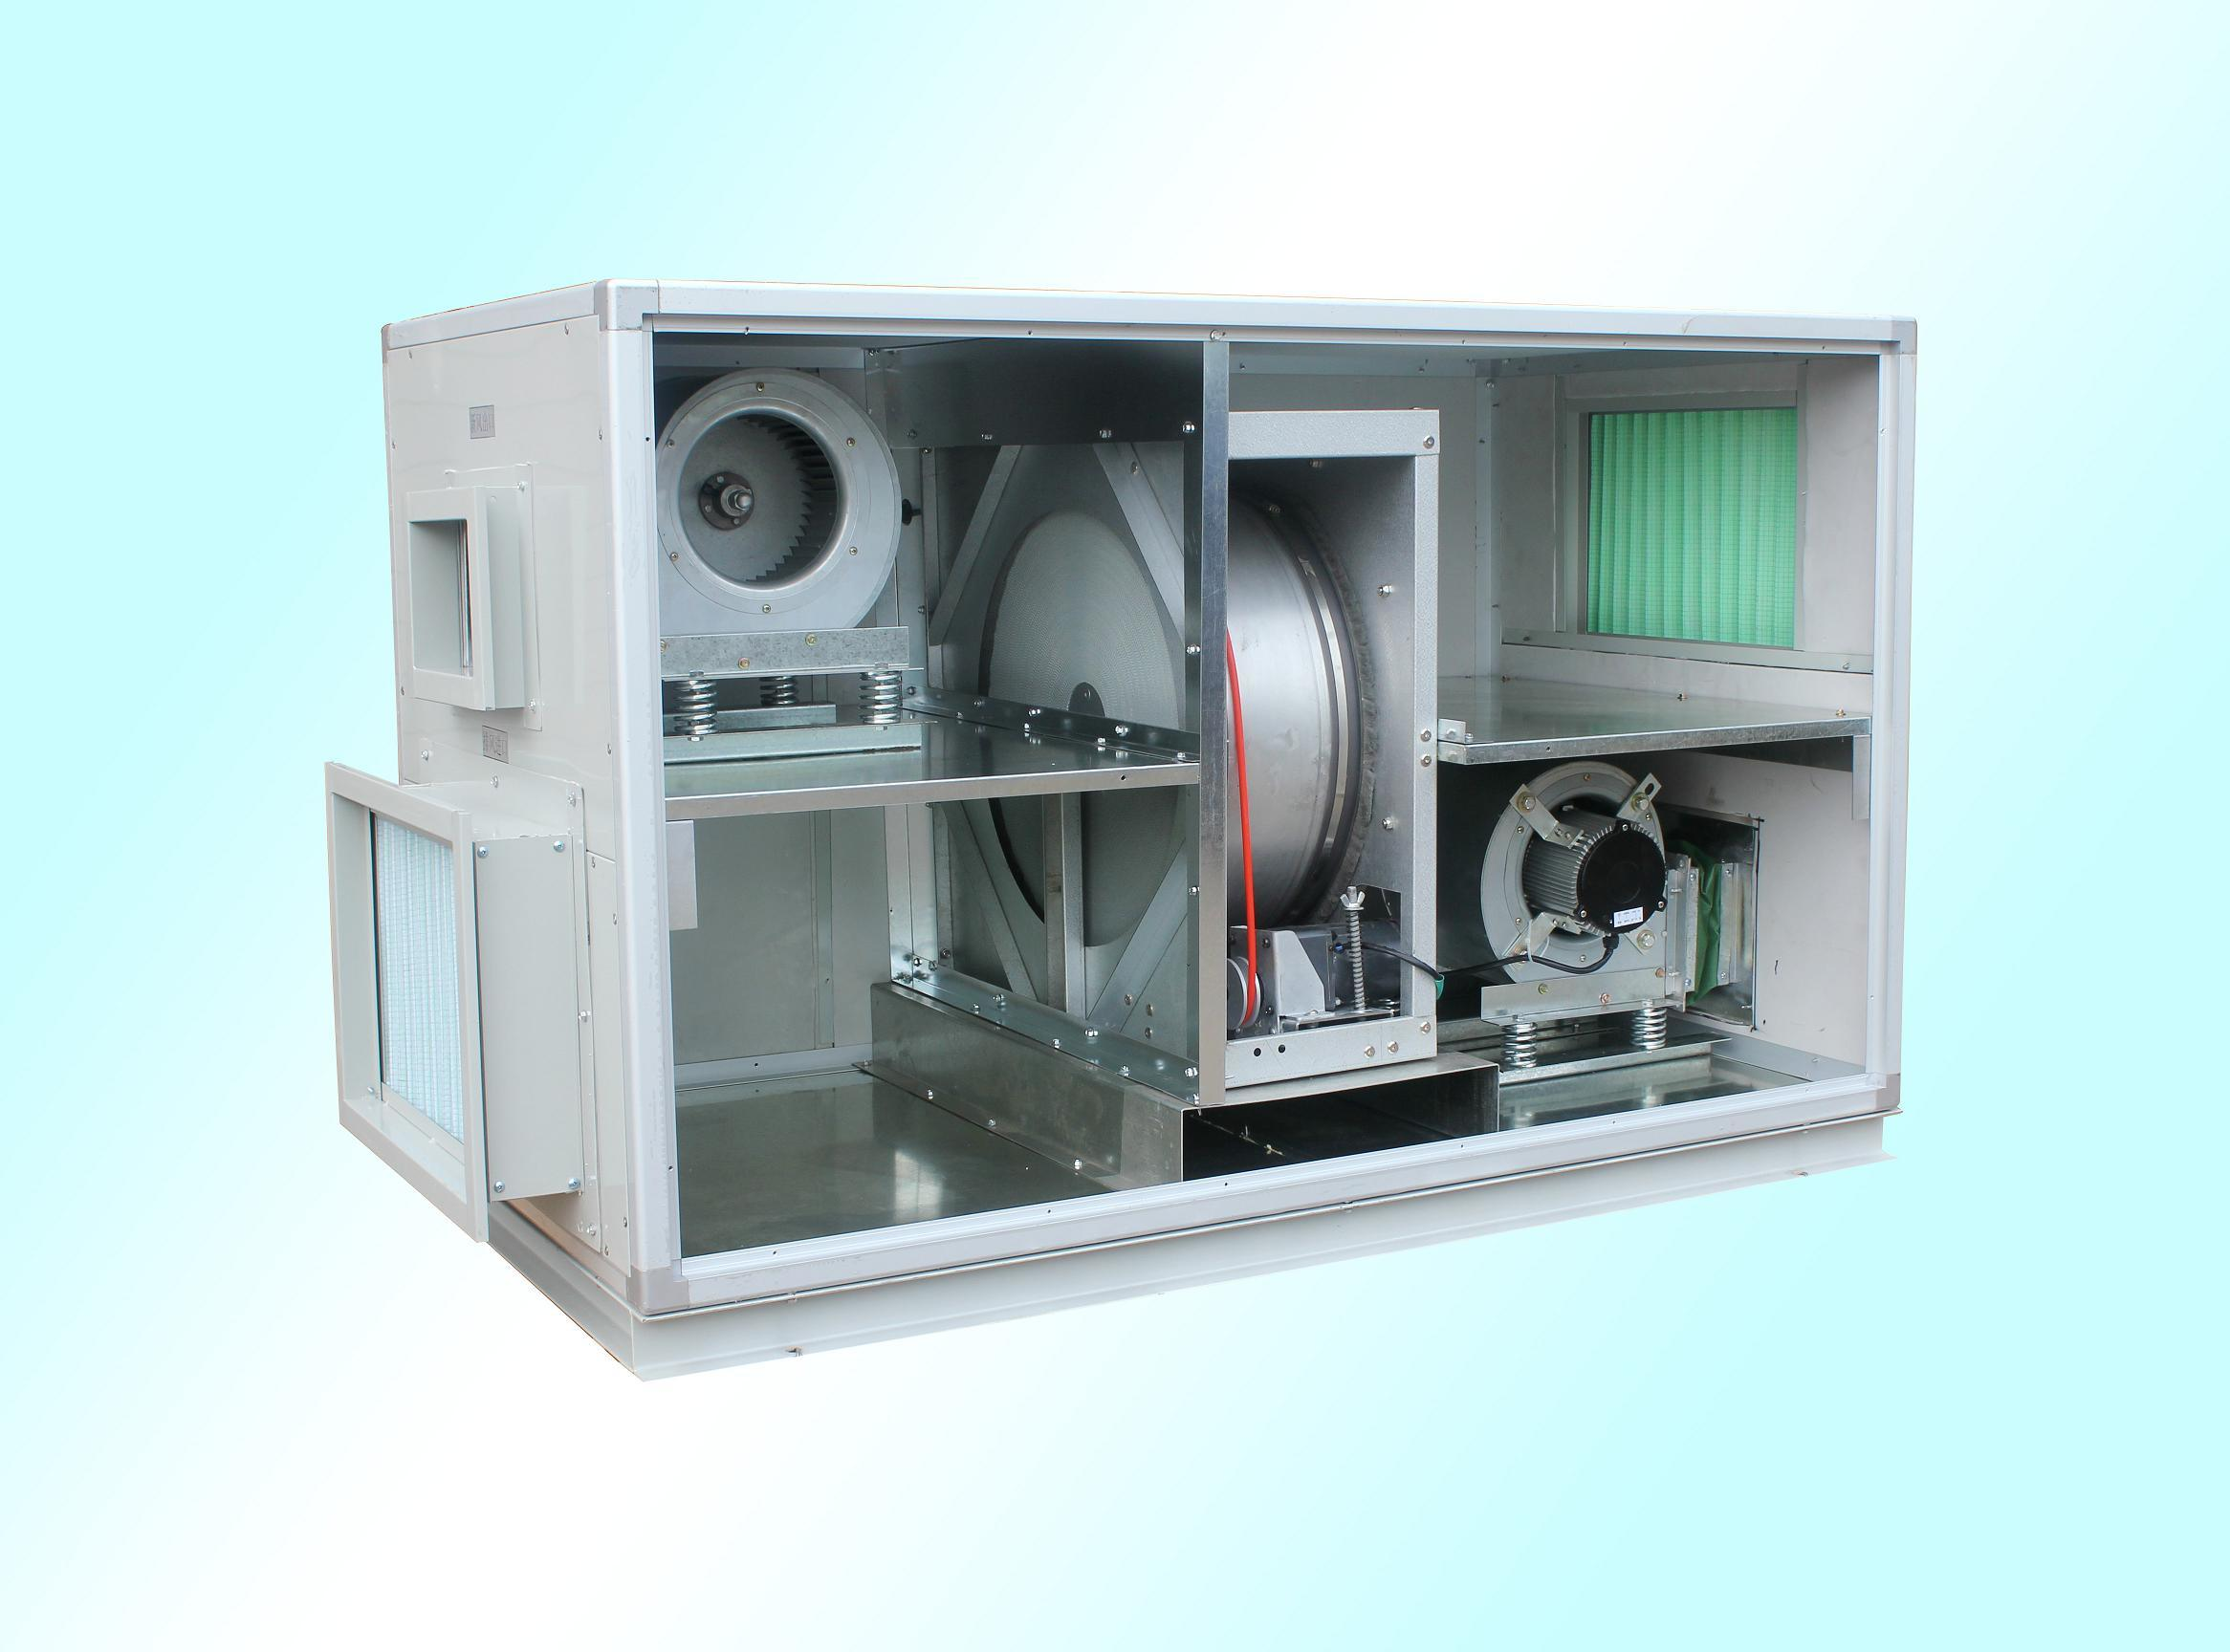 Air Handling Unit With Heat Recovery Wheel